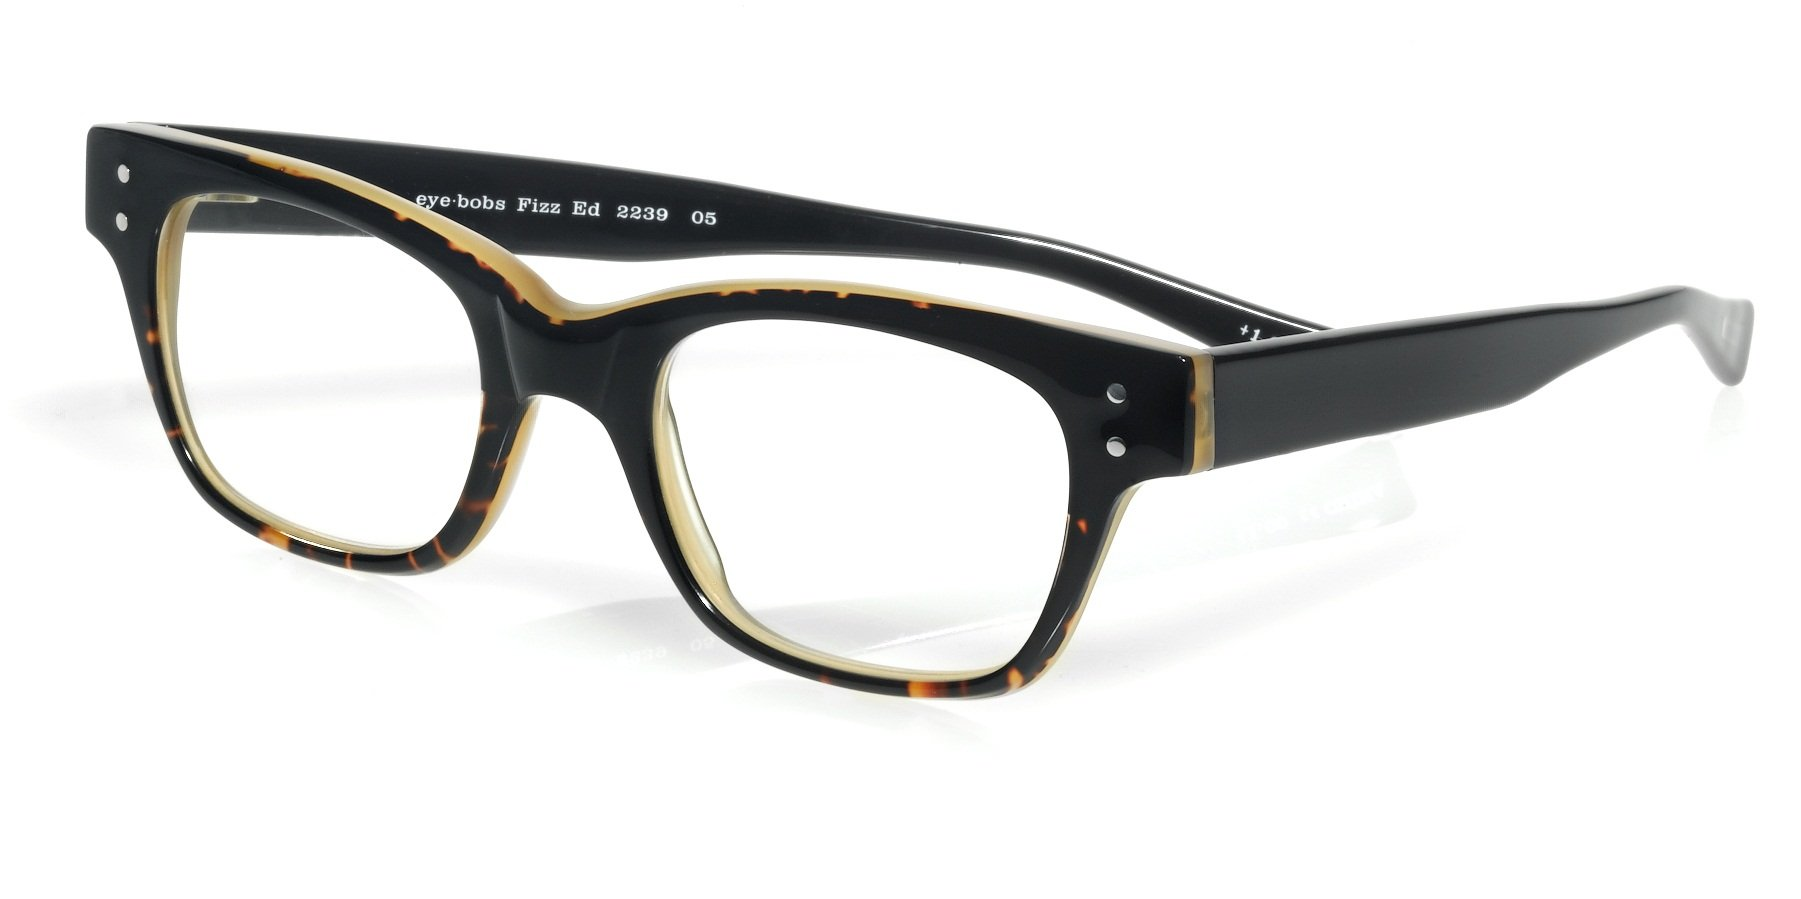 eyebobs Fizz Ed, Black and Demi Tortoise Reading Glasses - SUPERIOR QUALITY- because your eyes deserve the good stuff